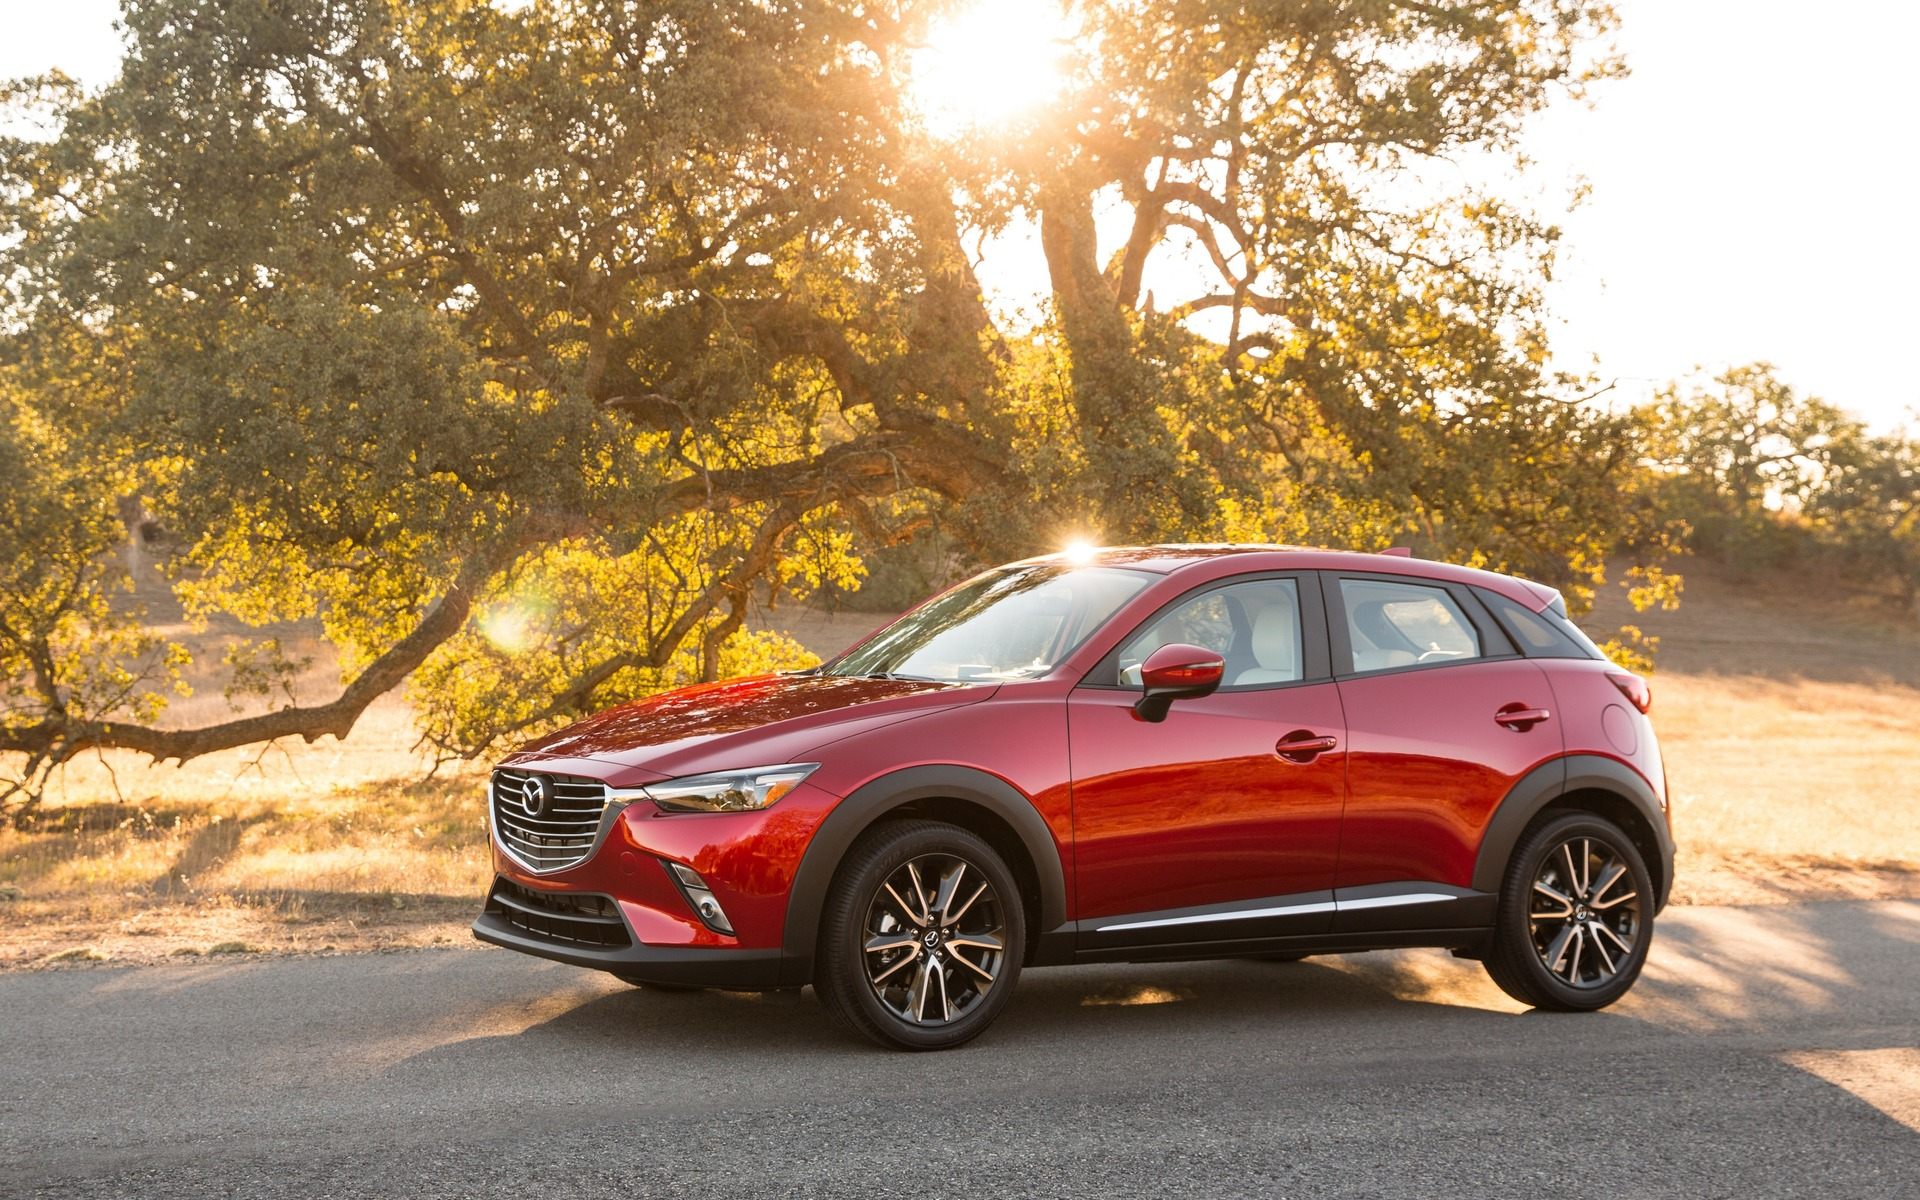 2018 Mazda Cx 3 For The Responsible Sportsman The Car Guide